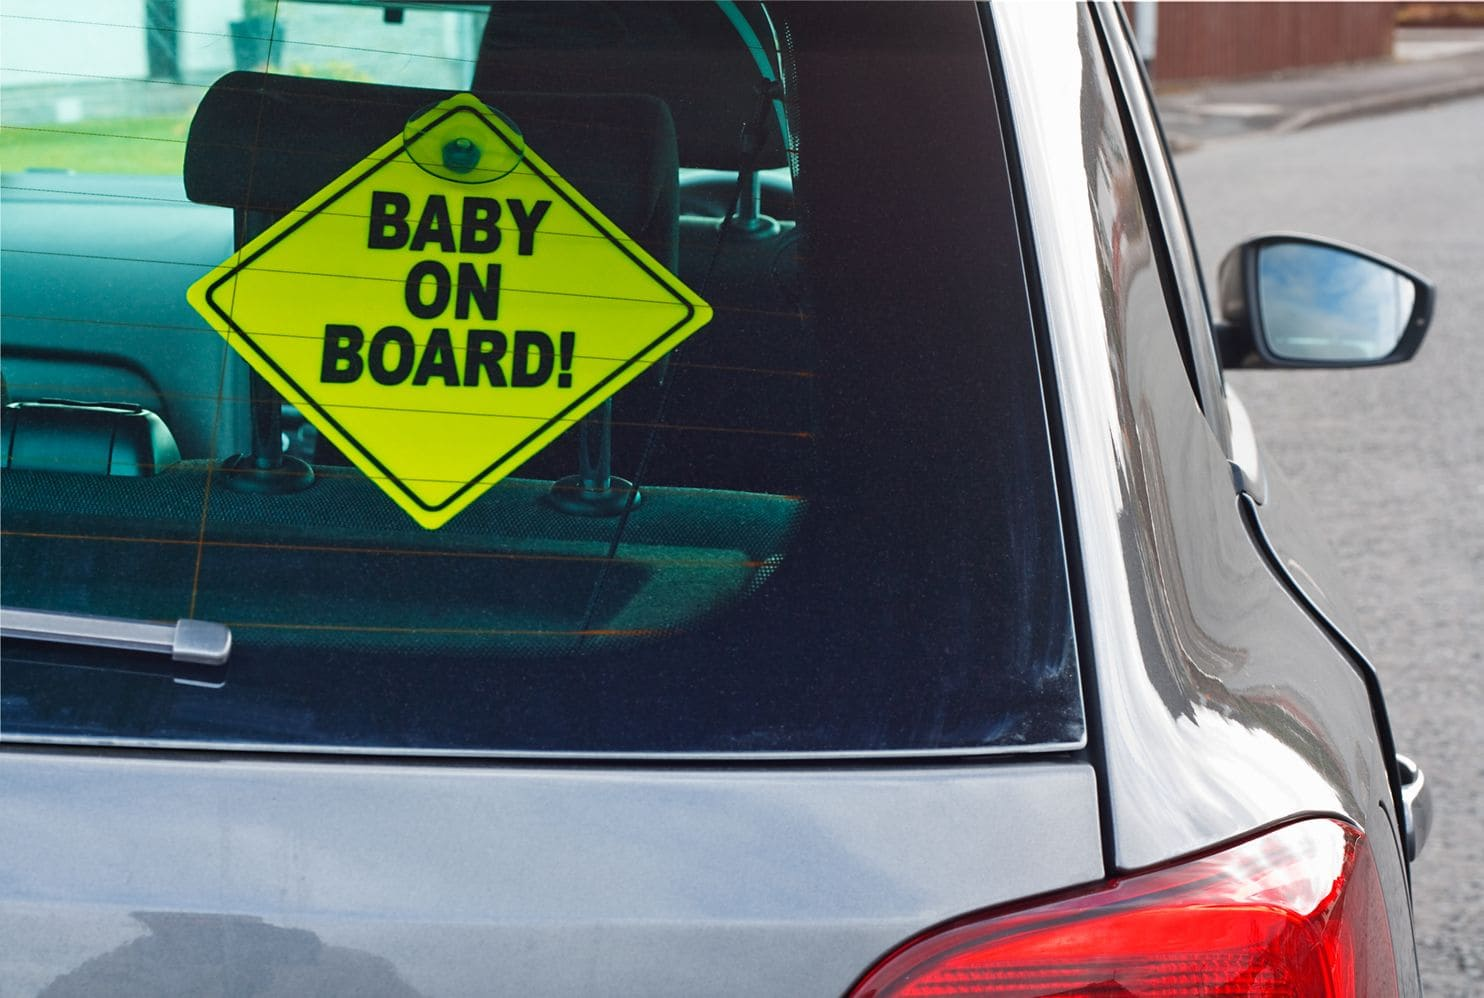 Parenting, risk, and fear - Washington Post article: 'Baby on Board': How a cutsey decal embodies the enduring terror of parenting. Featured expert. Read more here.